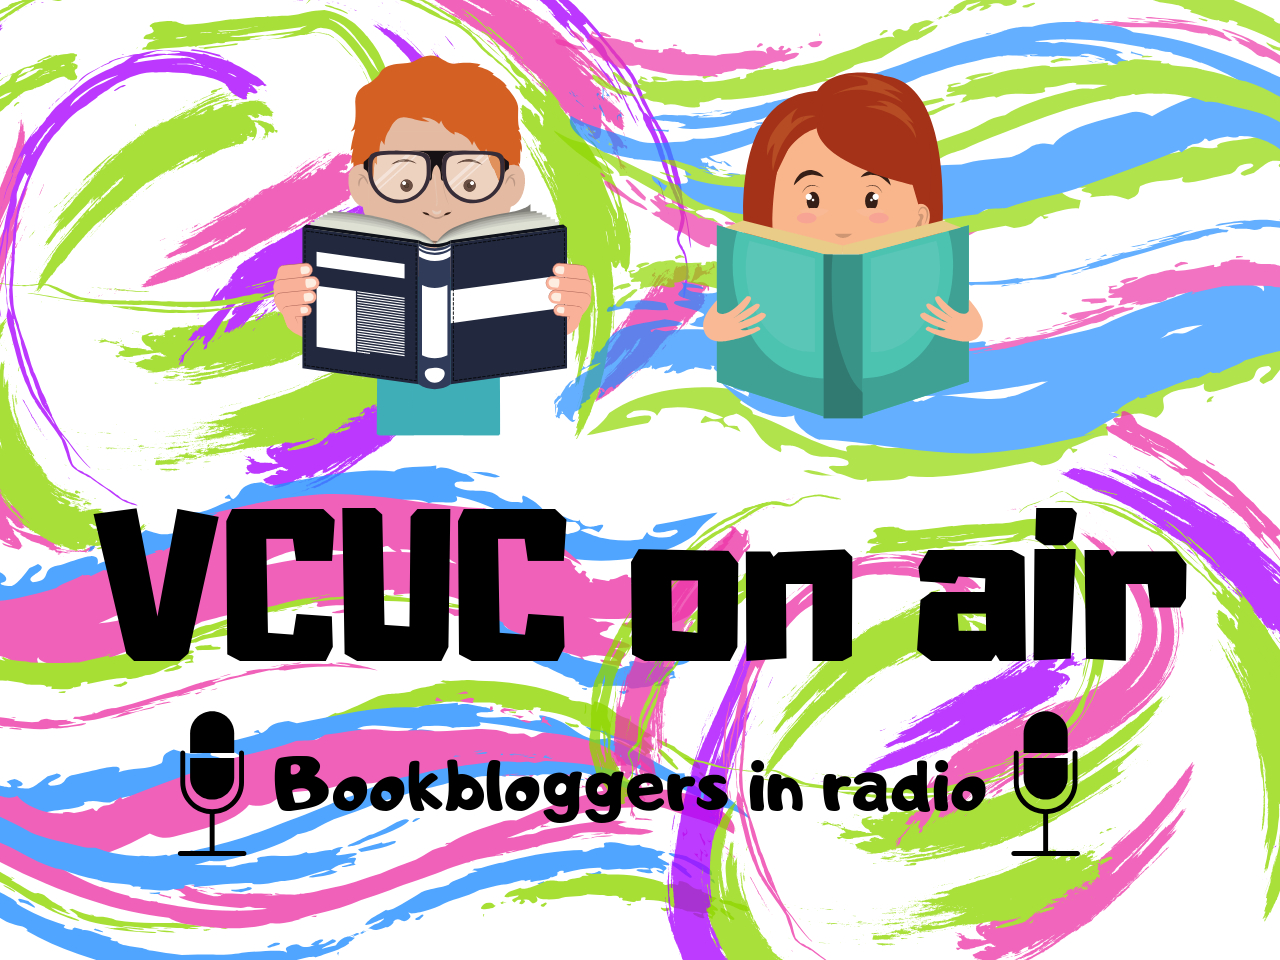 Crowdfunding VCUC on air